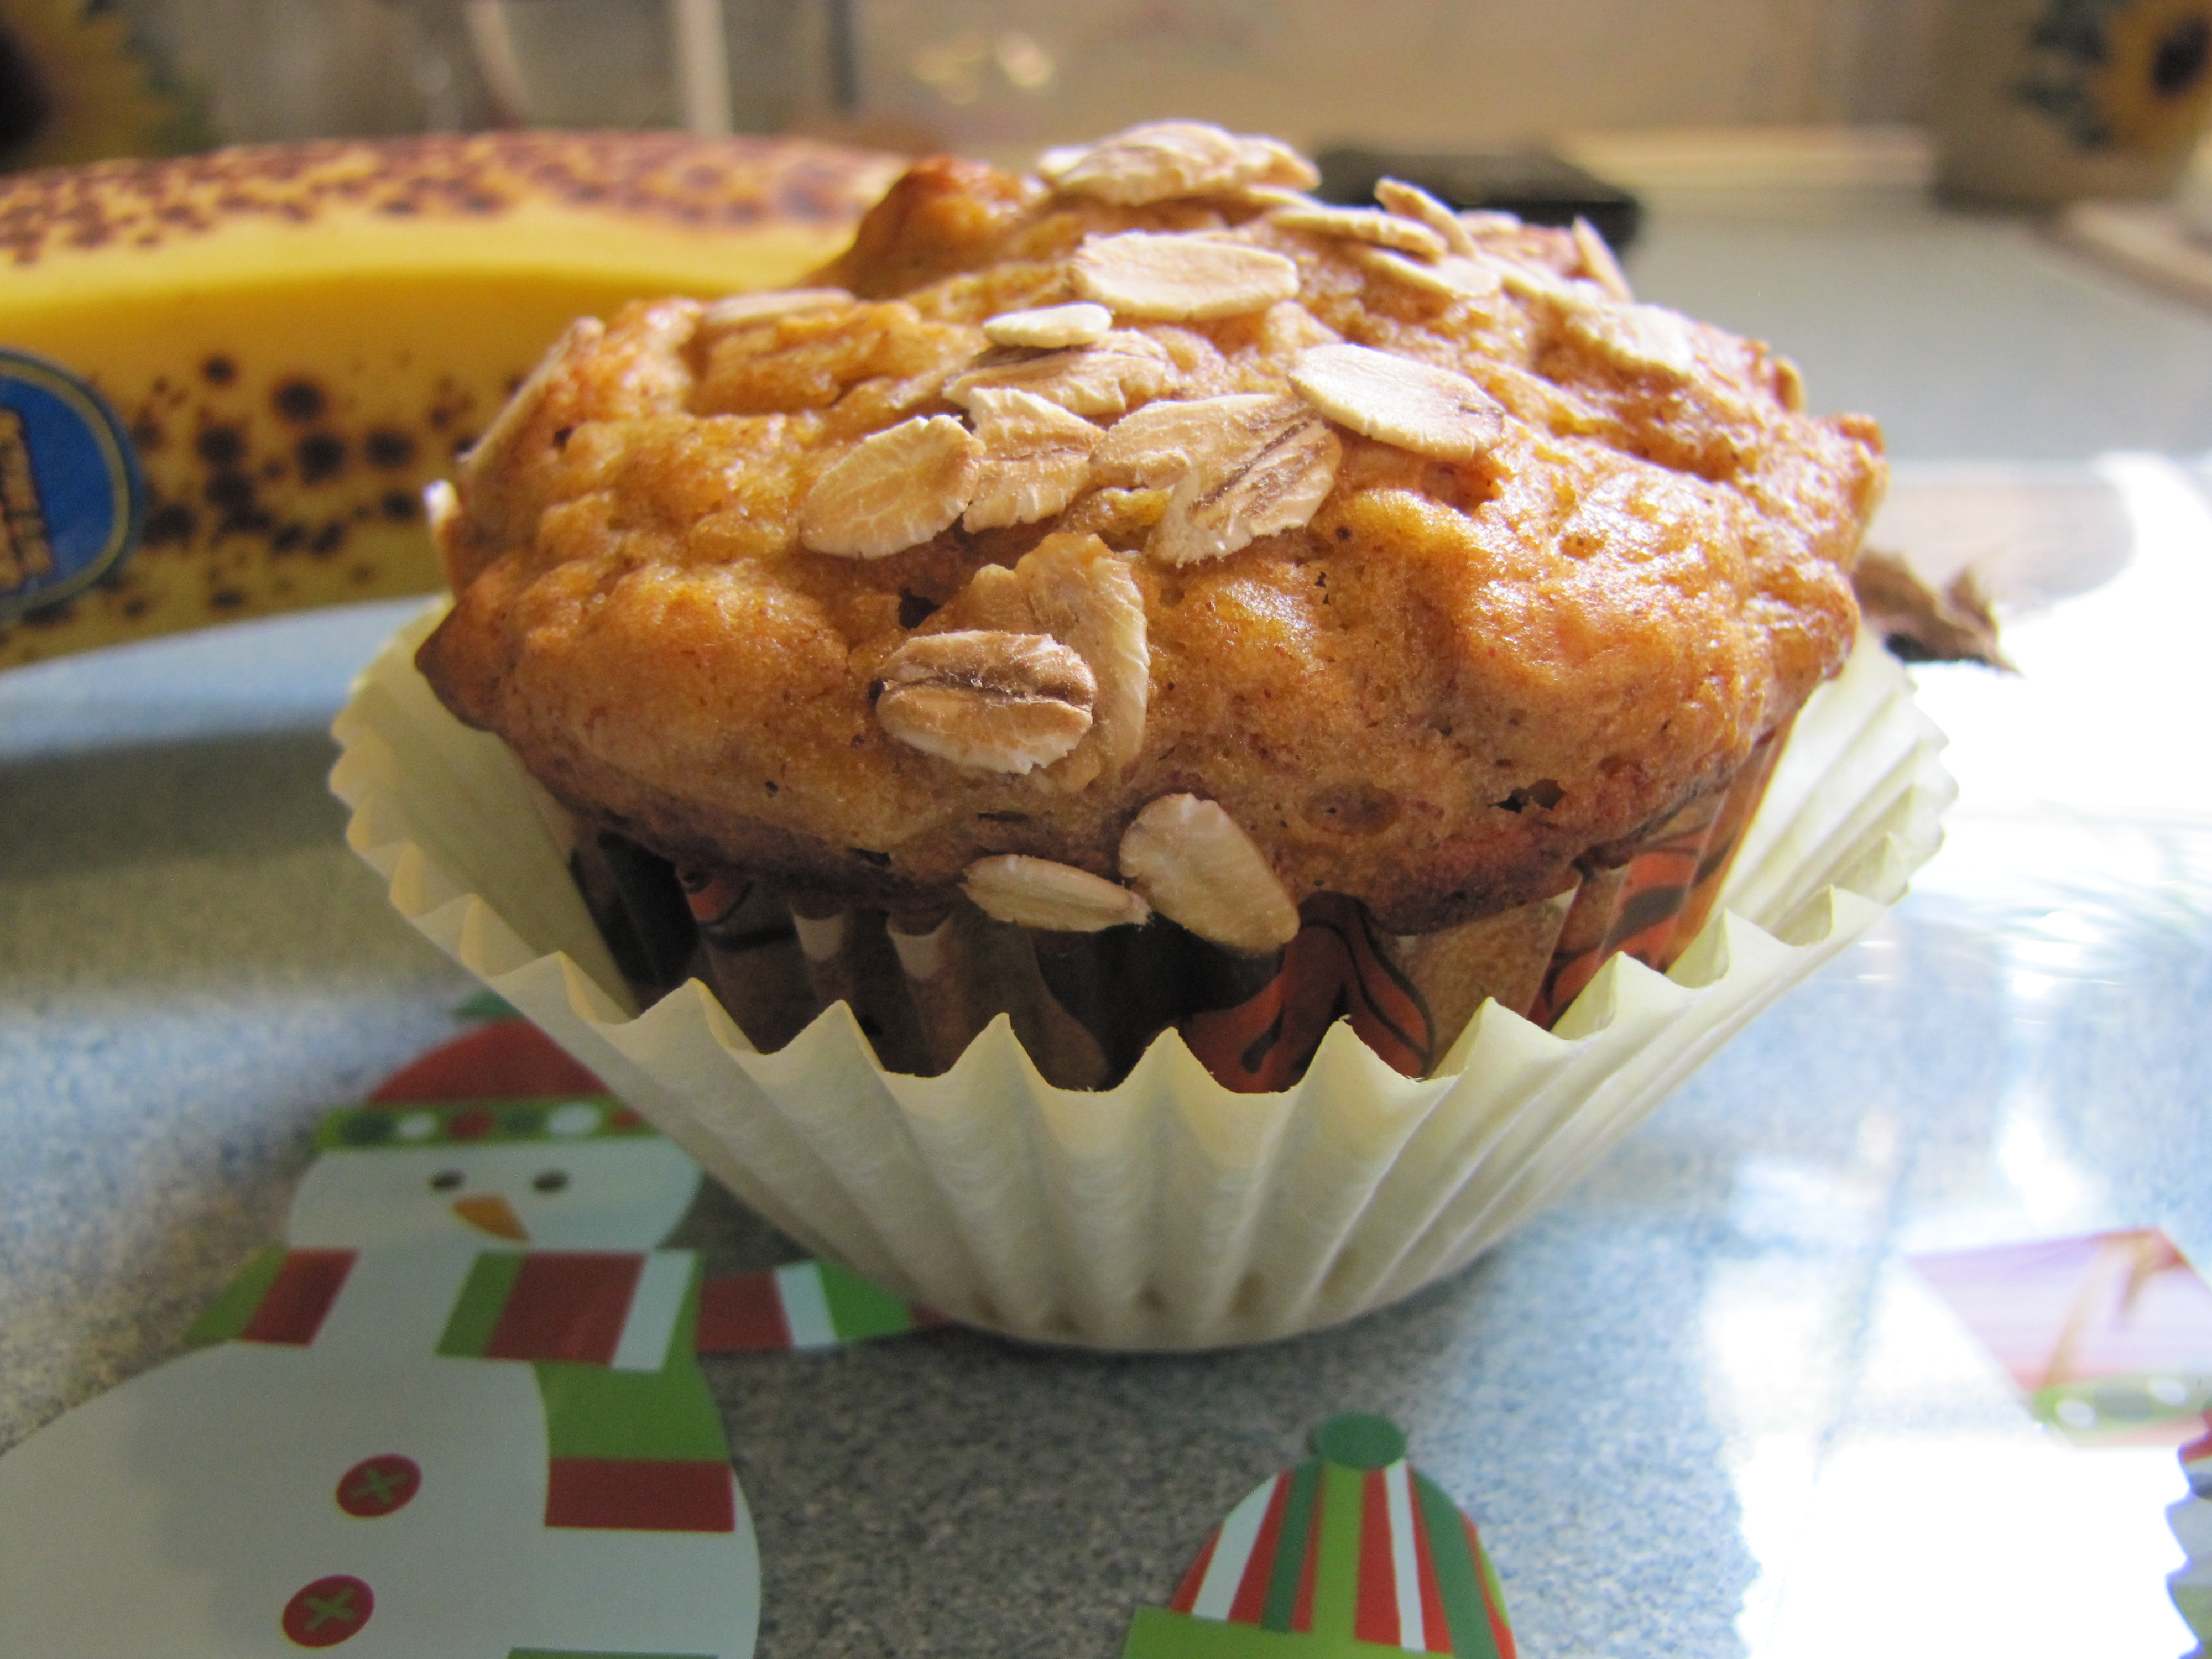 Pumpkin/Banana Oatmeal Muffins